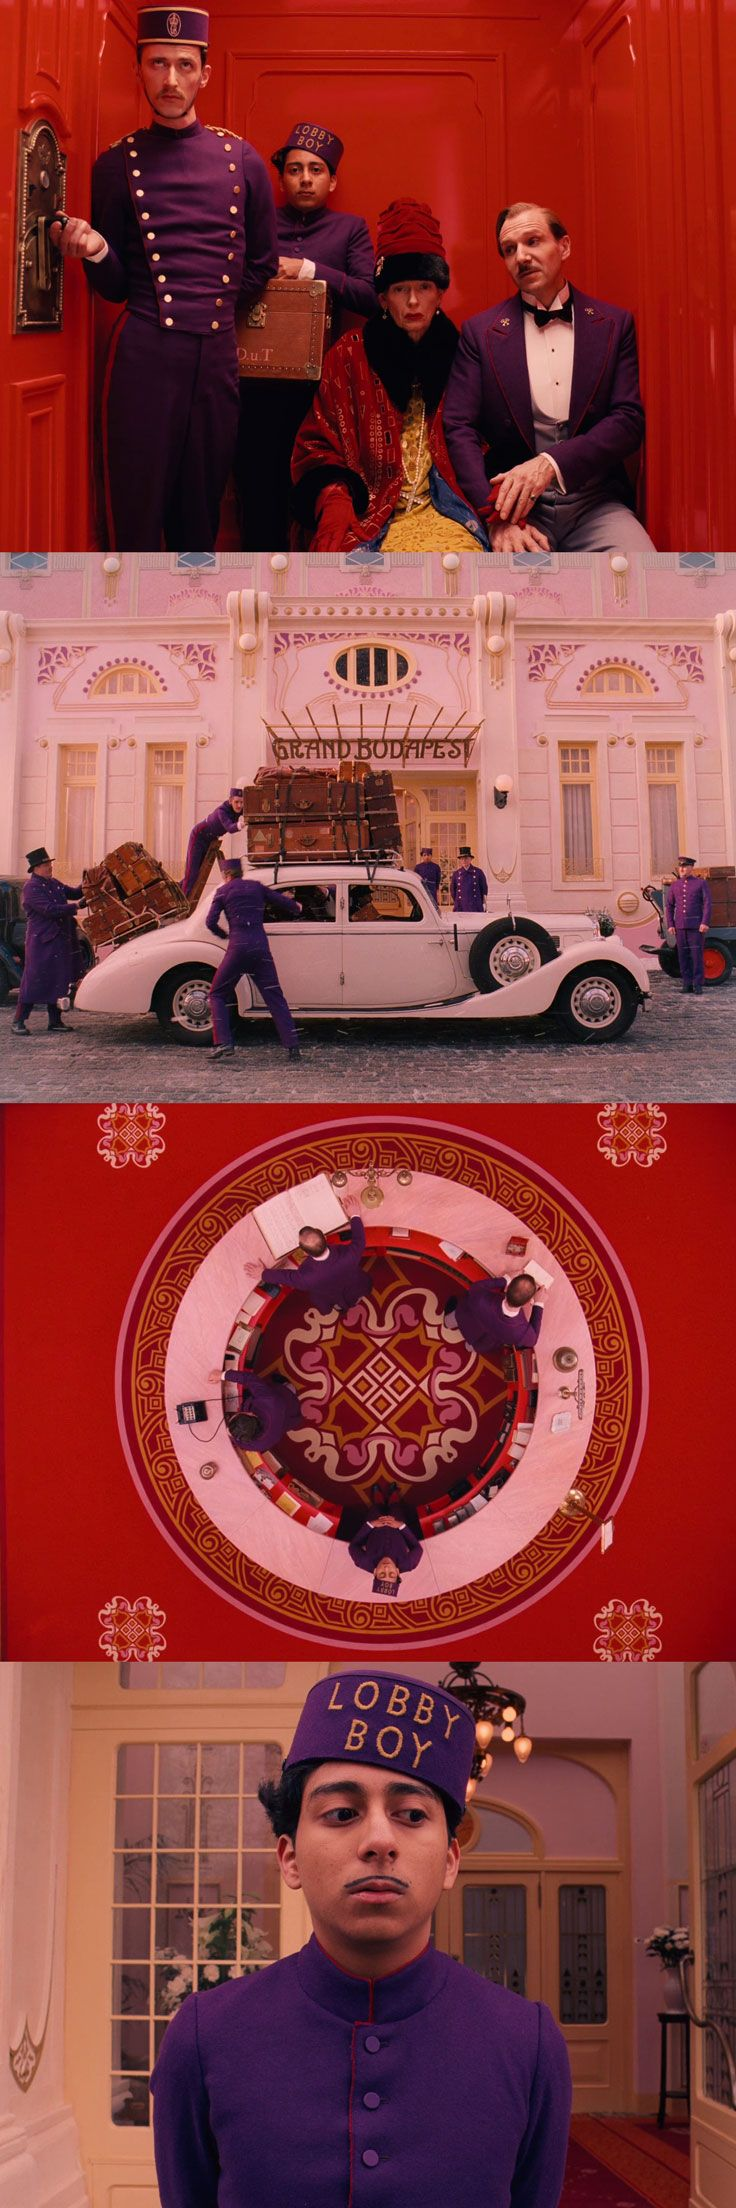 Bold use of pink, purple and red tones in The Grand Budapest Hotel.  I always love the visuals in Wes Anderson films.